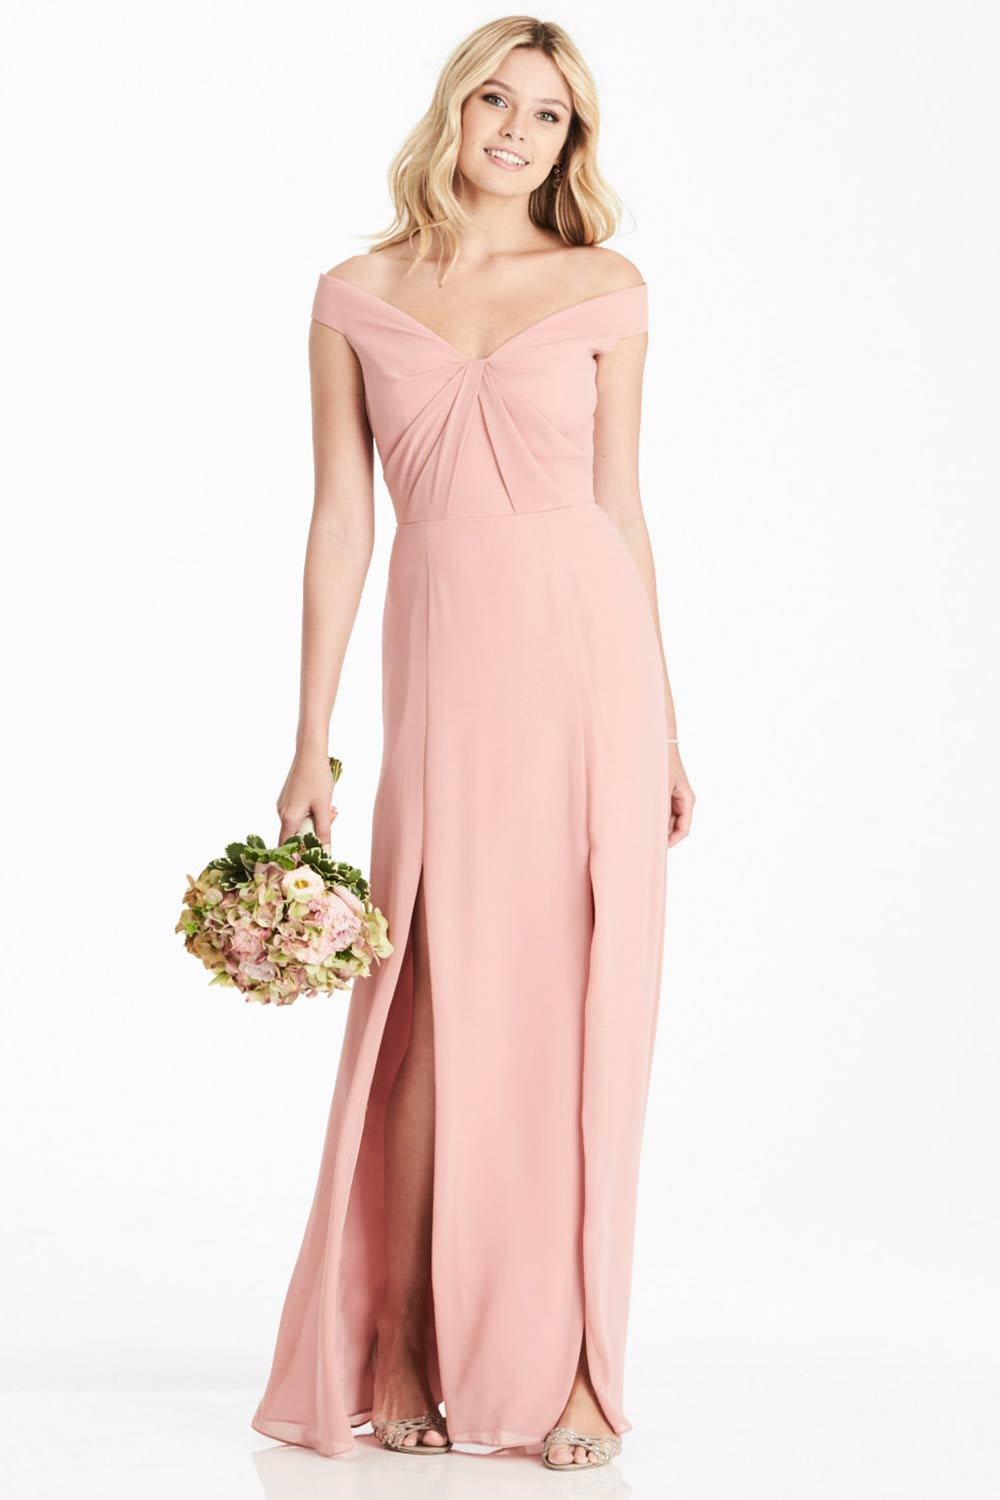 bridesmaid-dresses-dessy-26044